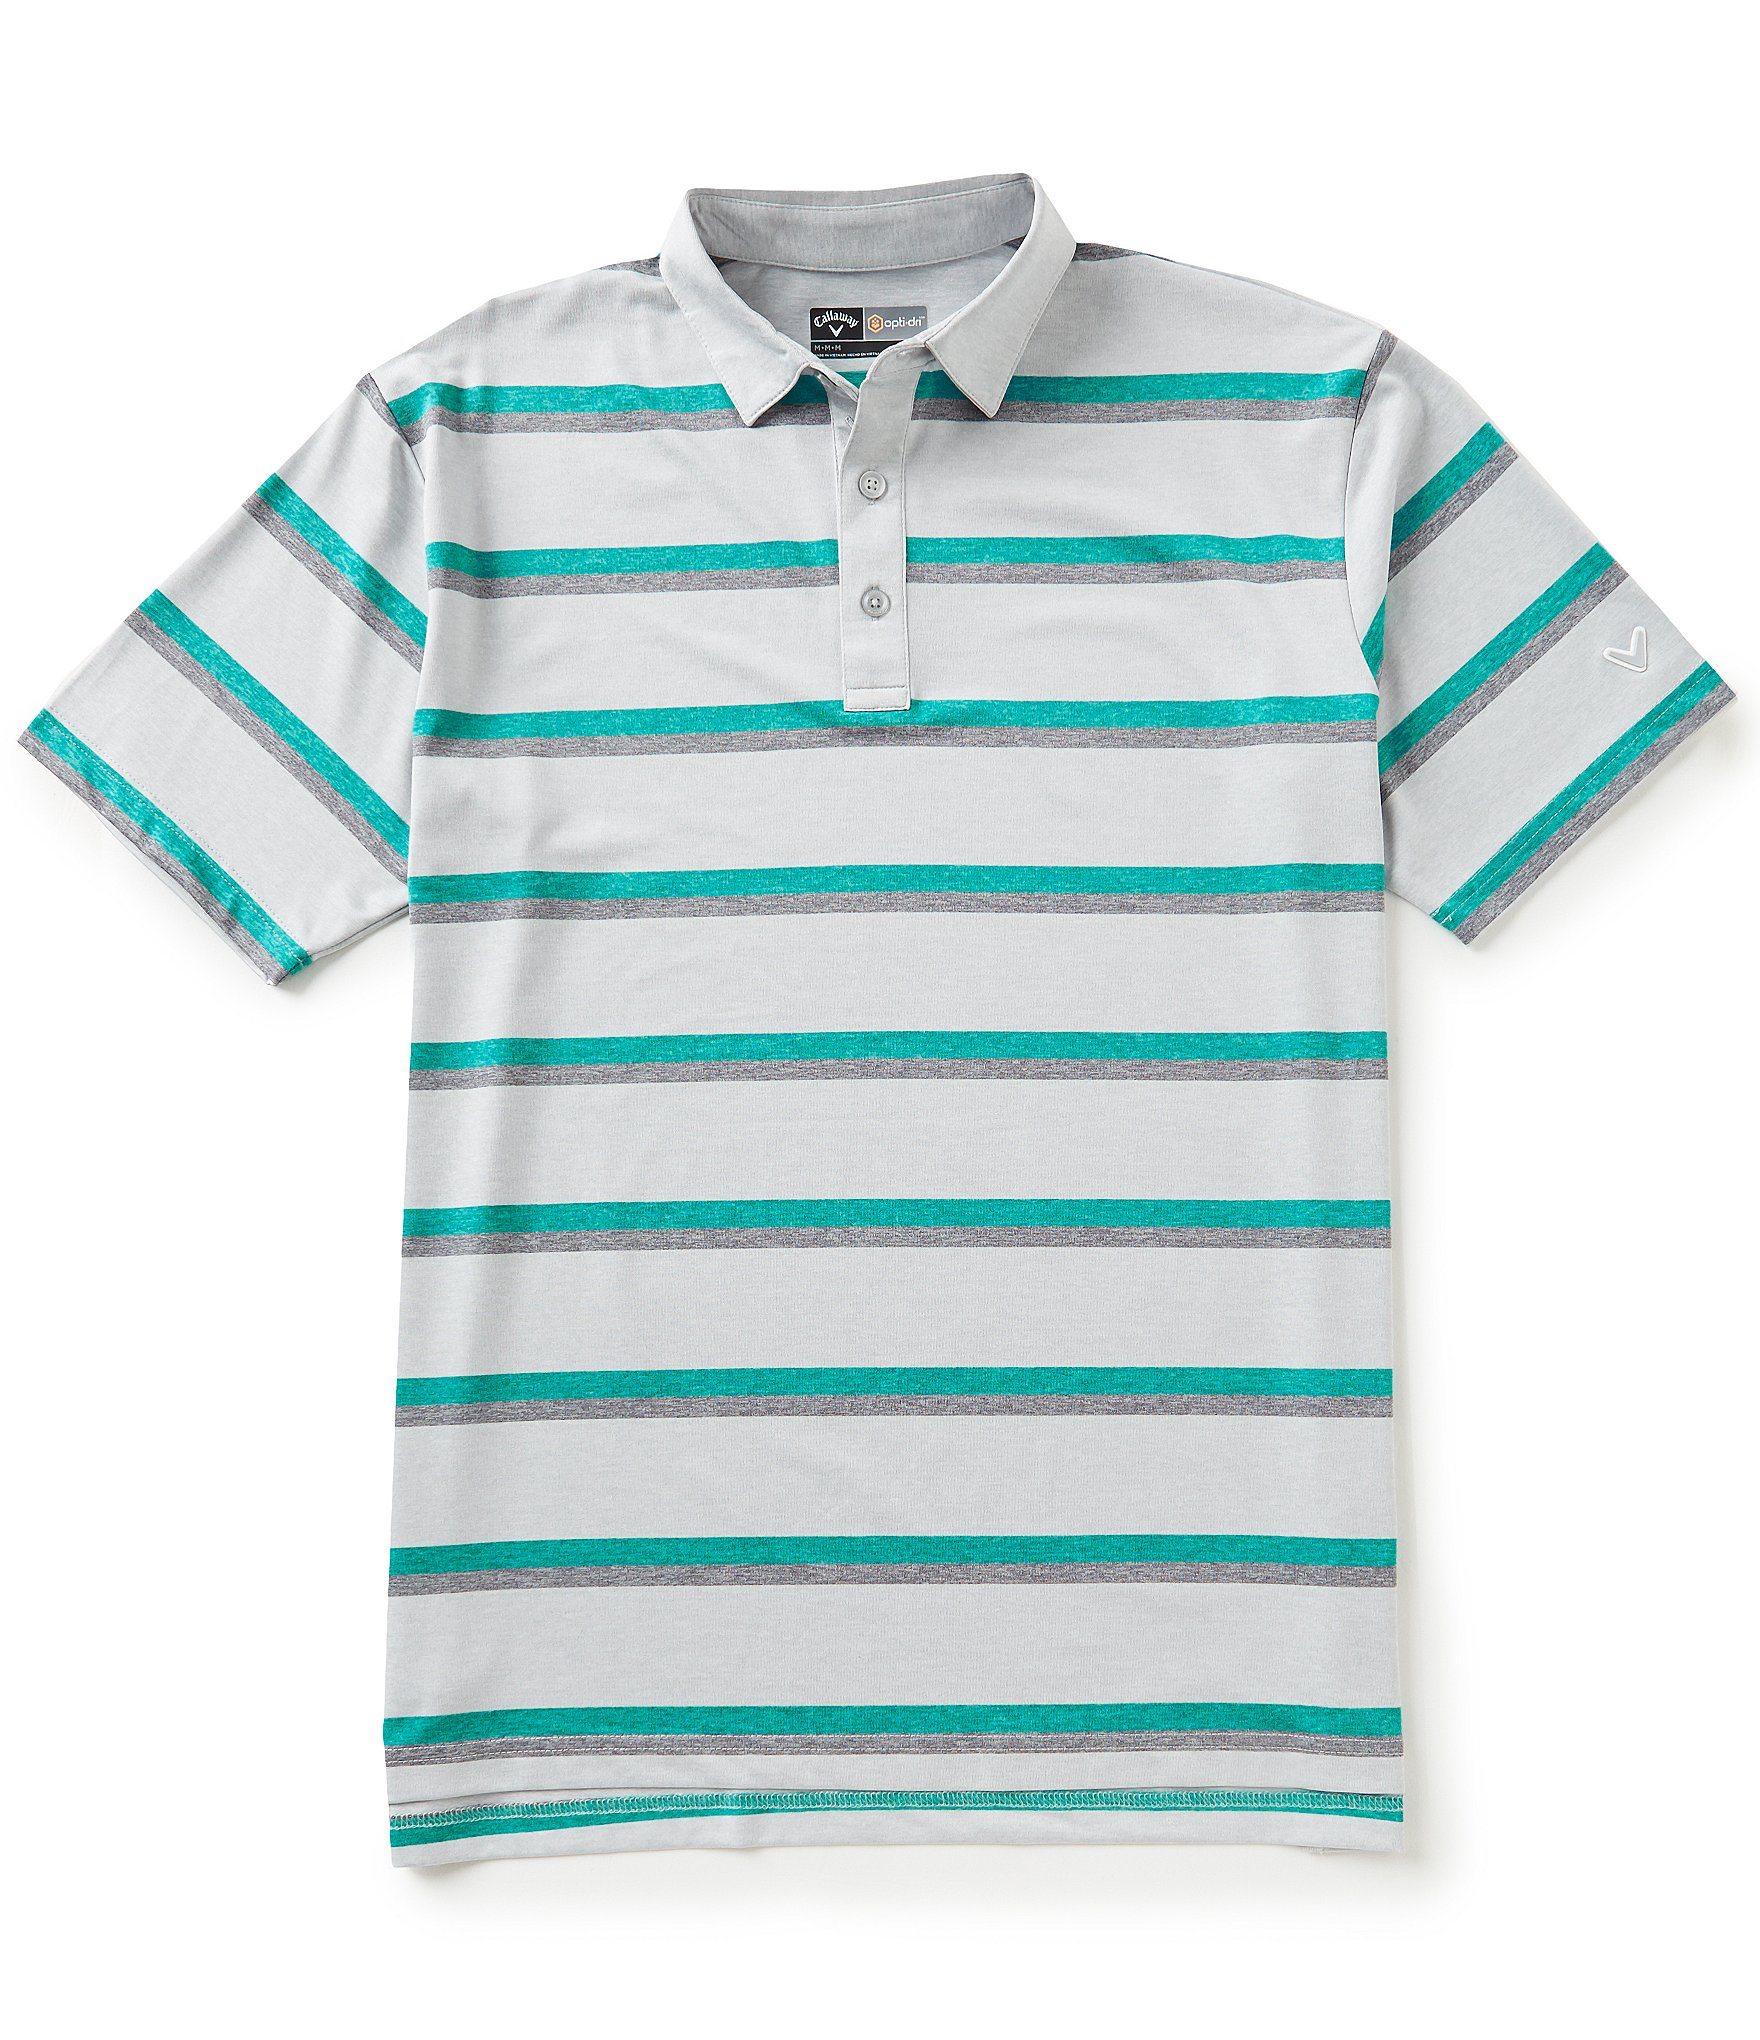 Callaway golf big tall heather striped short sleeve polo for Large tall golf shirts